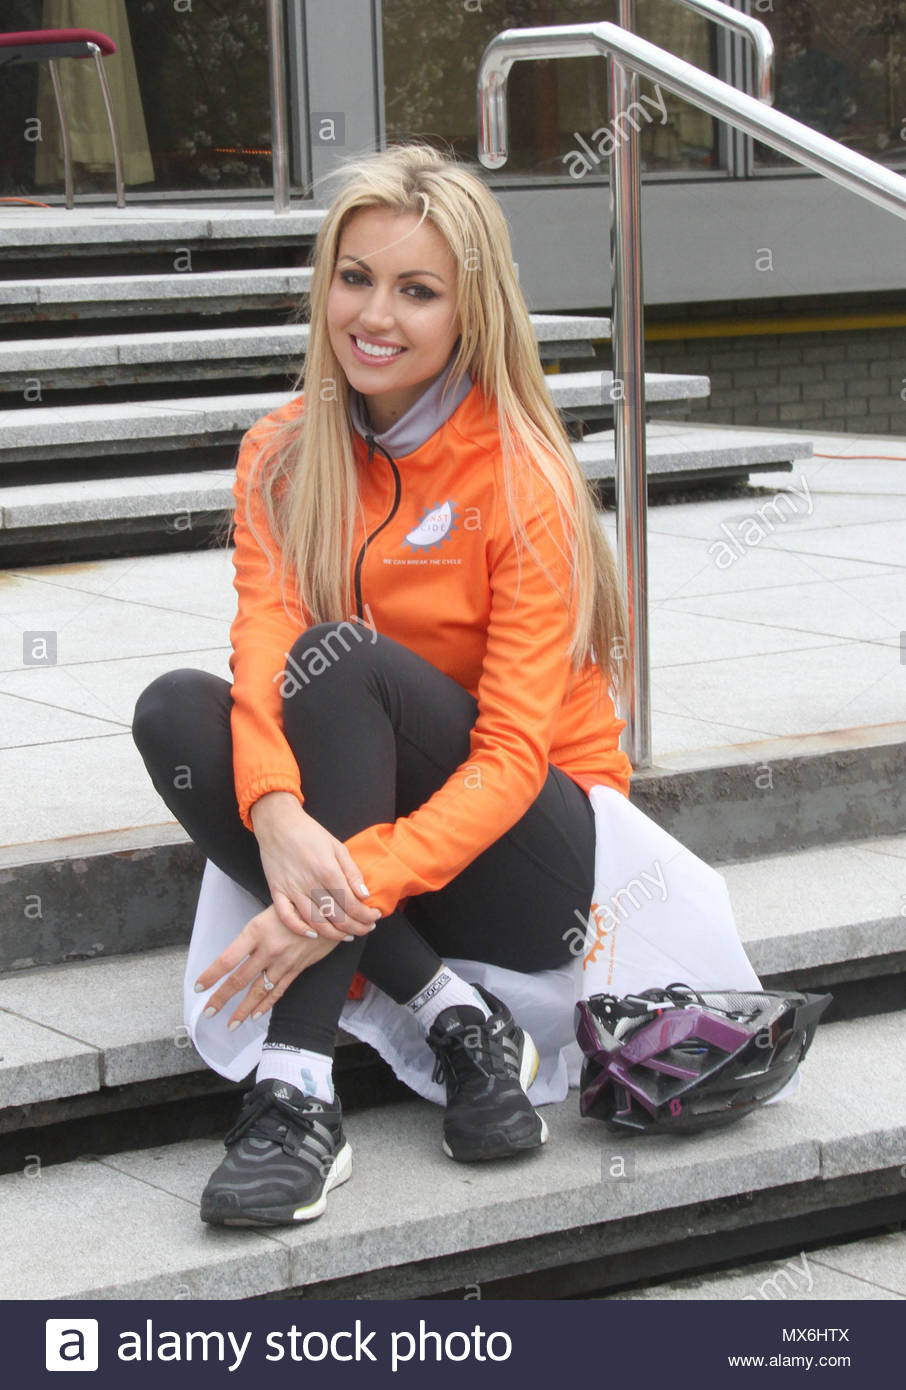 Rosanna davison former miss world and playboy girl rosanna davison rosanna davison former miss world and playboy girl rosanna davison does a charity cycle this morning for charity she cycled on a tandem 12 miles from thecheapjerseys Choice Image